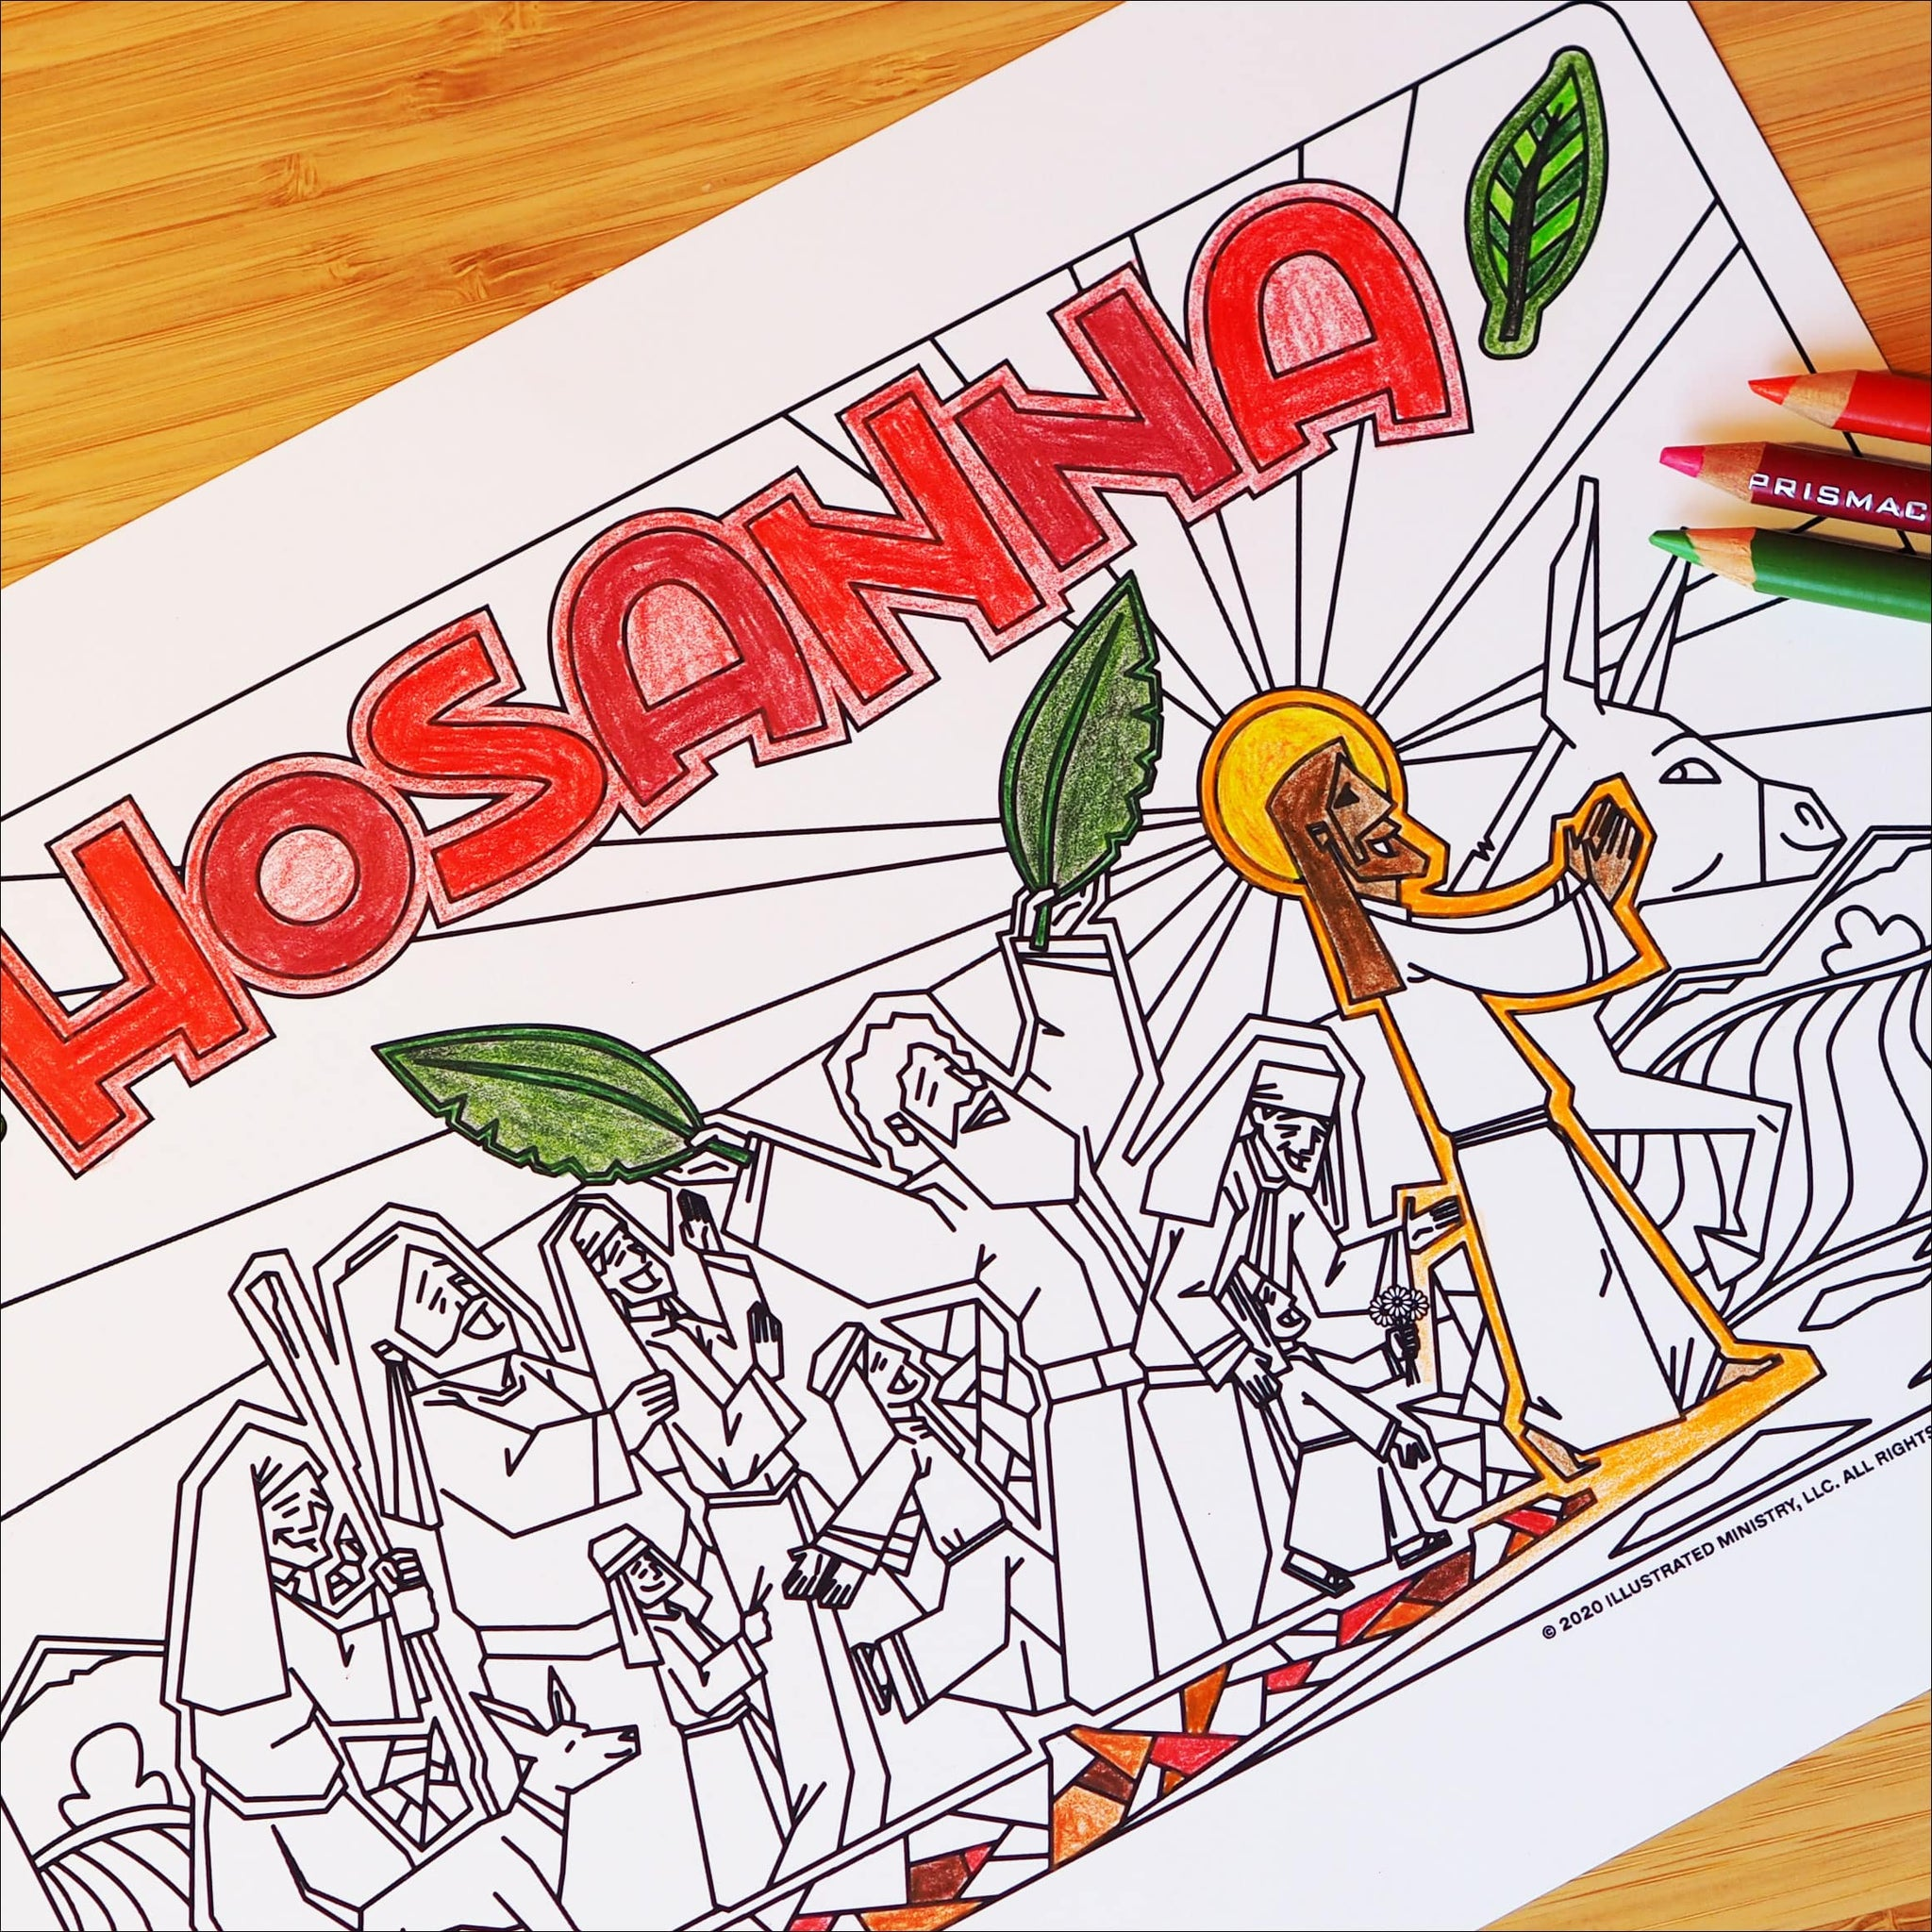 Hosanna Coloring Page & Poster